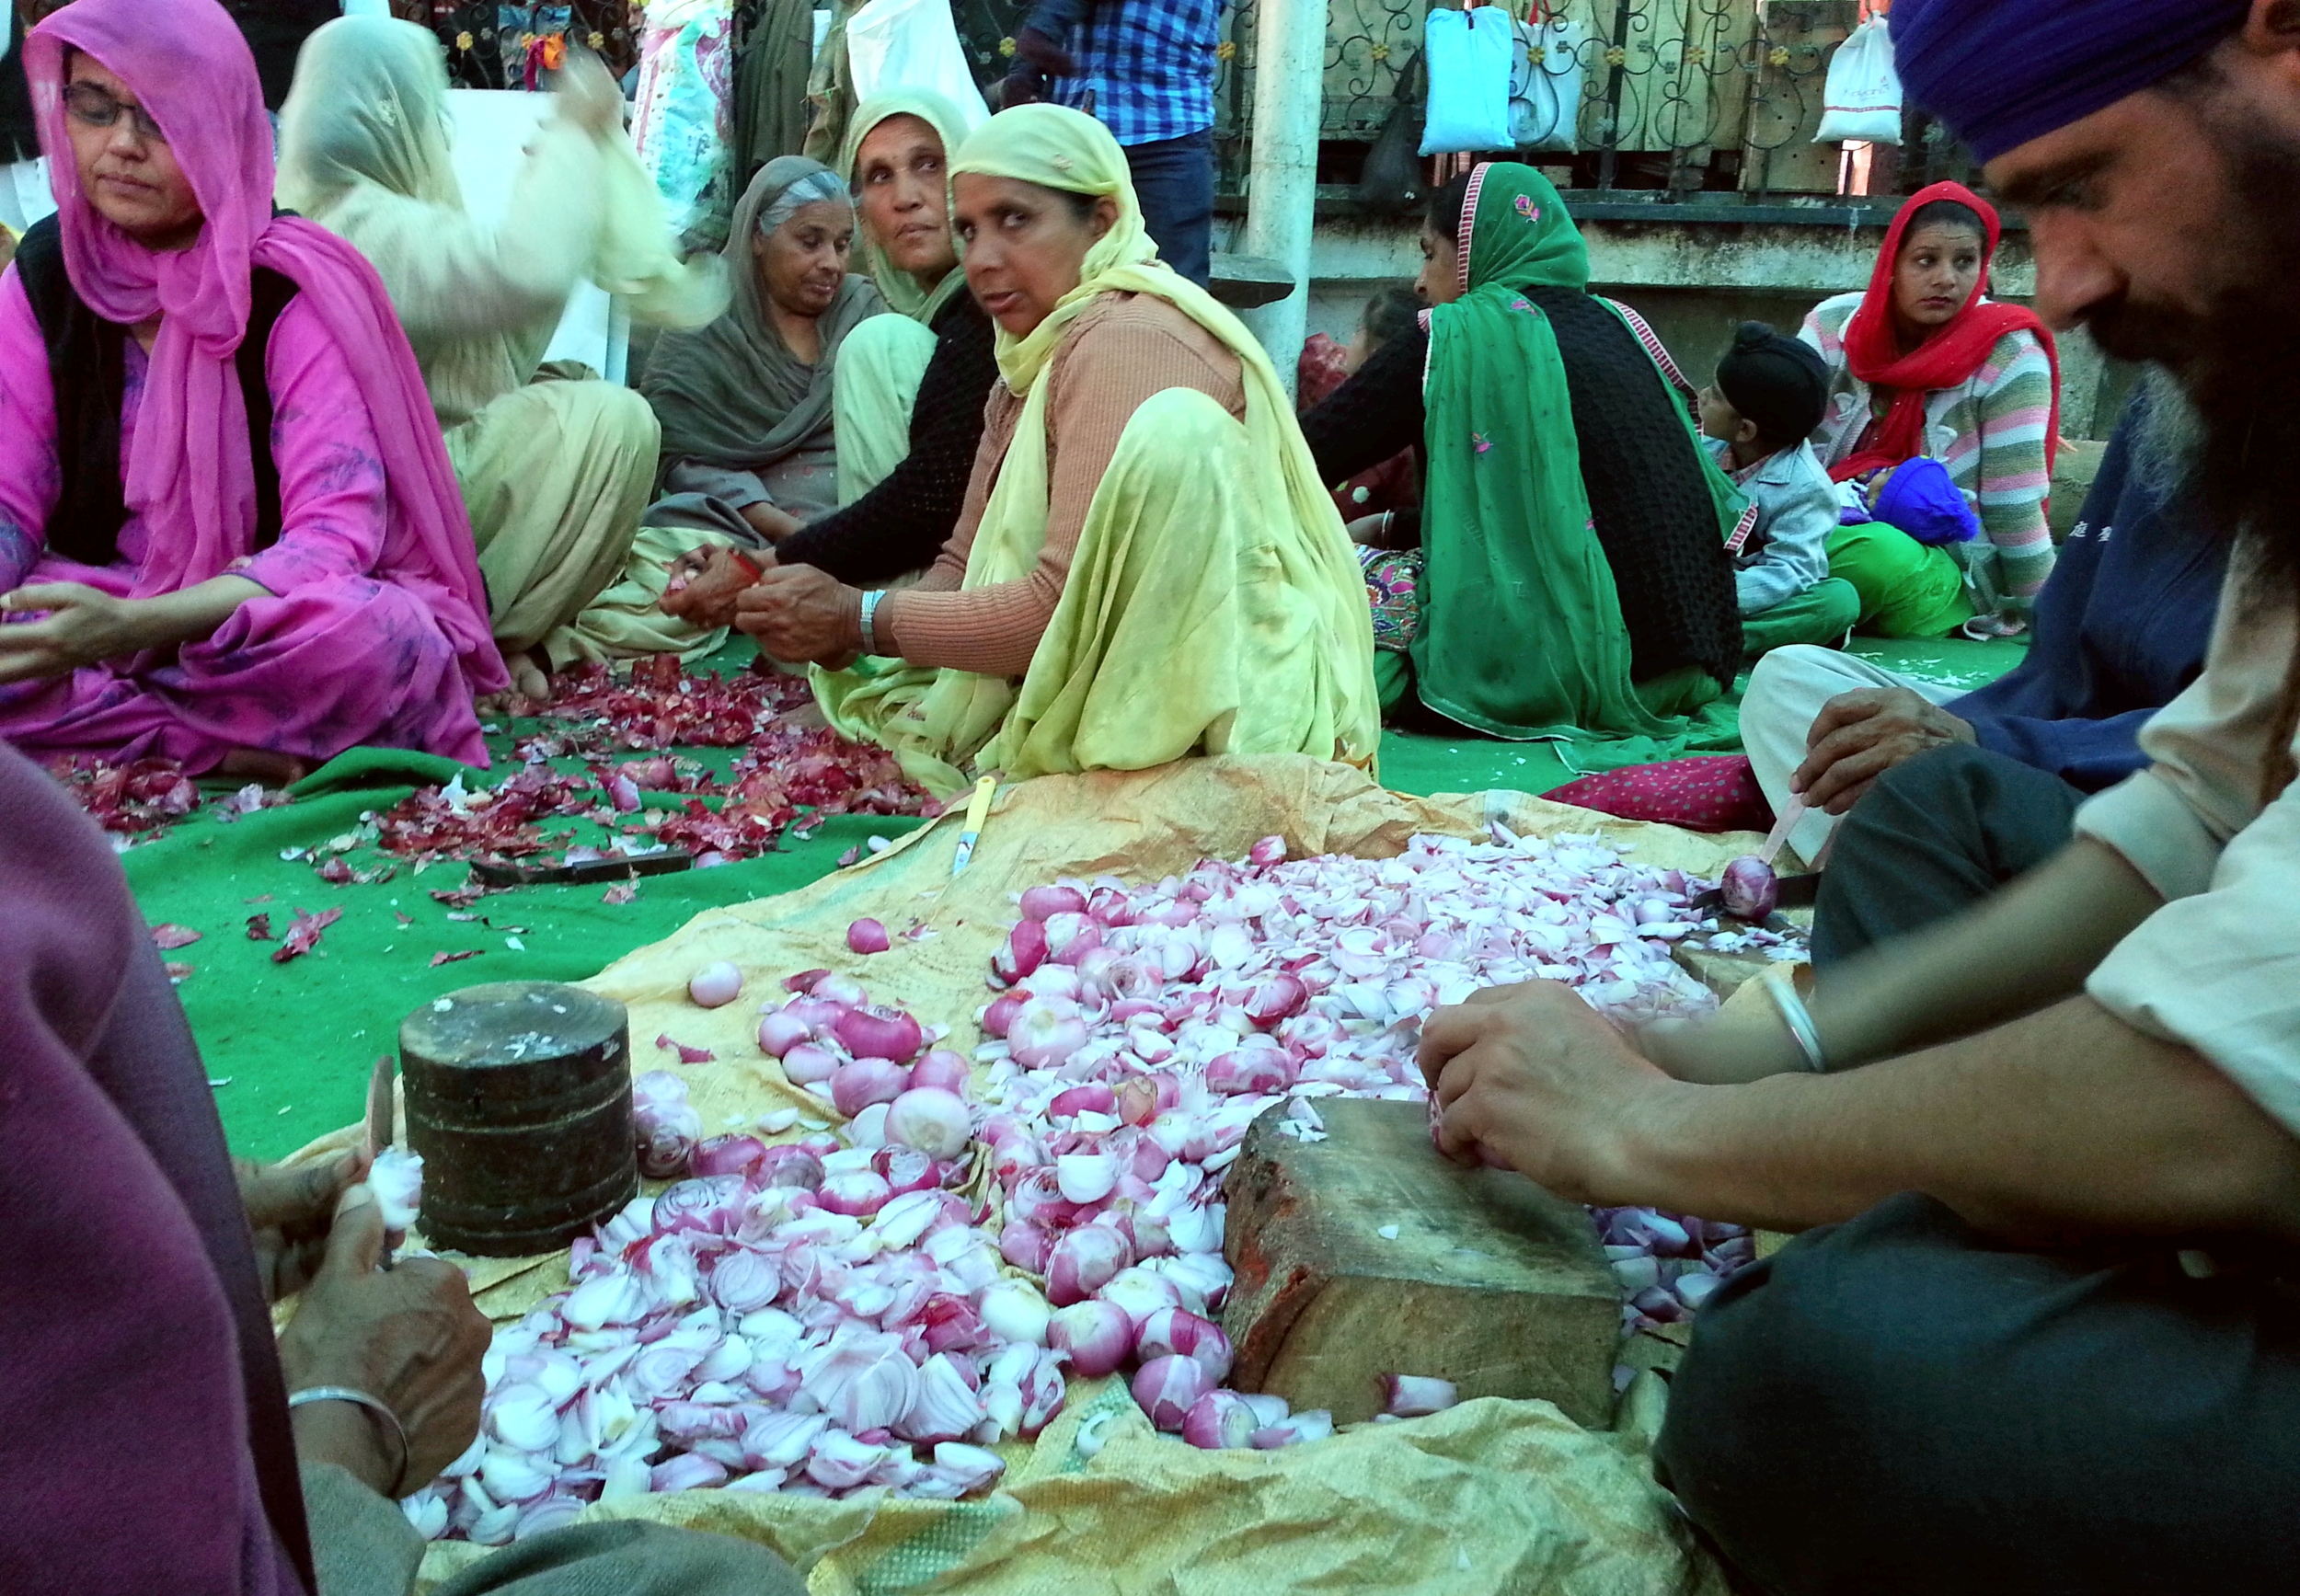 Pilgrims prepare food at the Sikh Golden Temple in Amritsar, India.